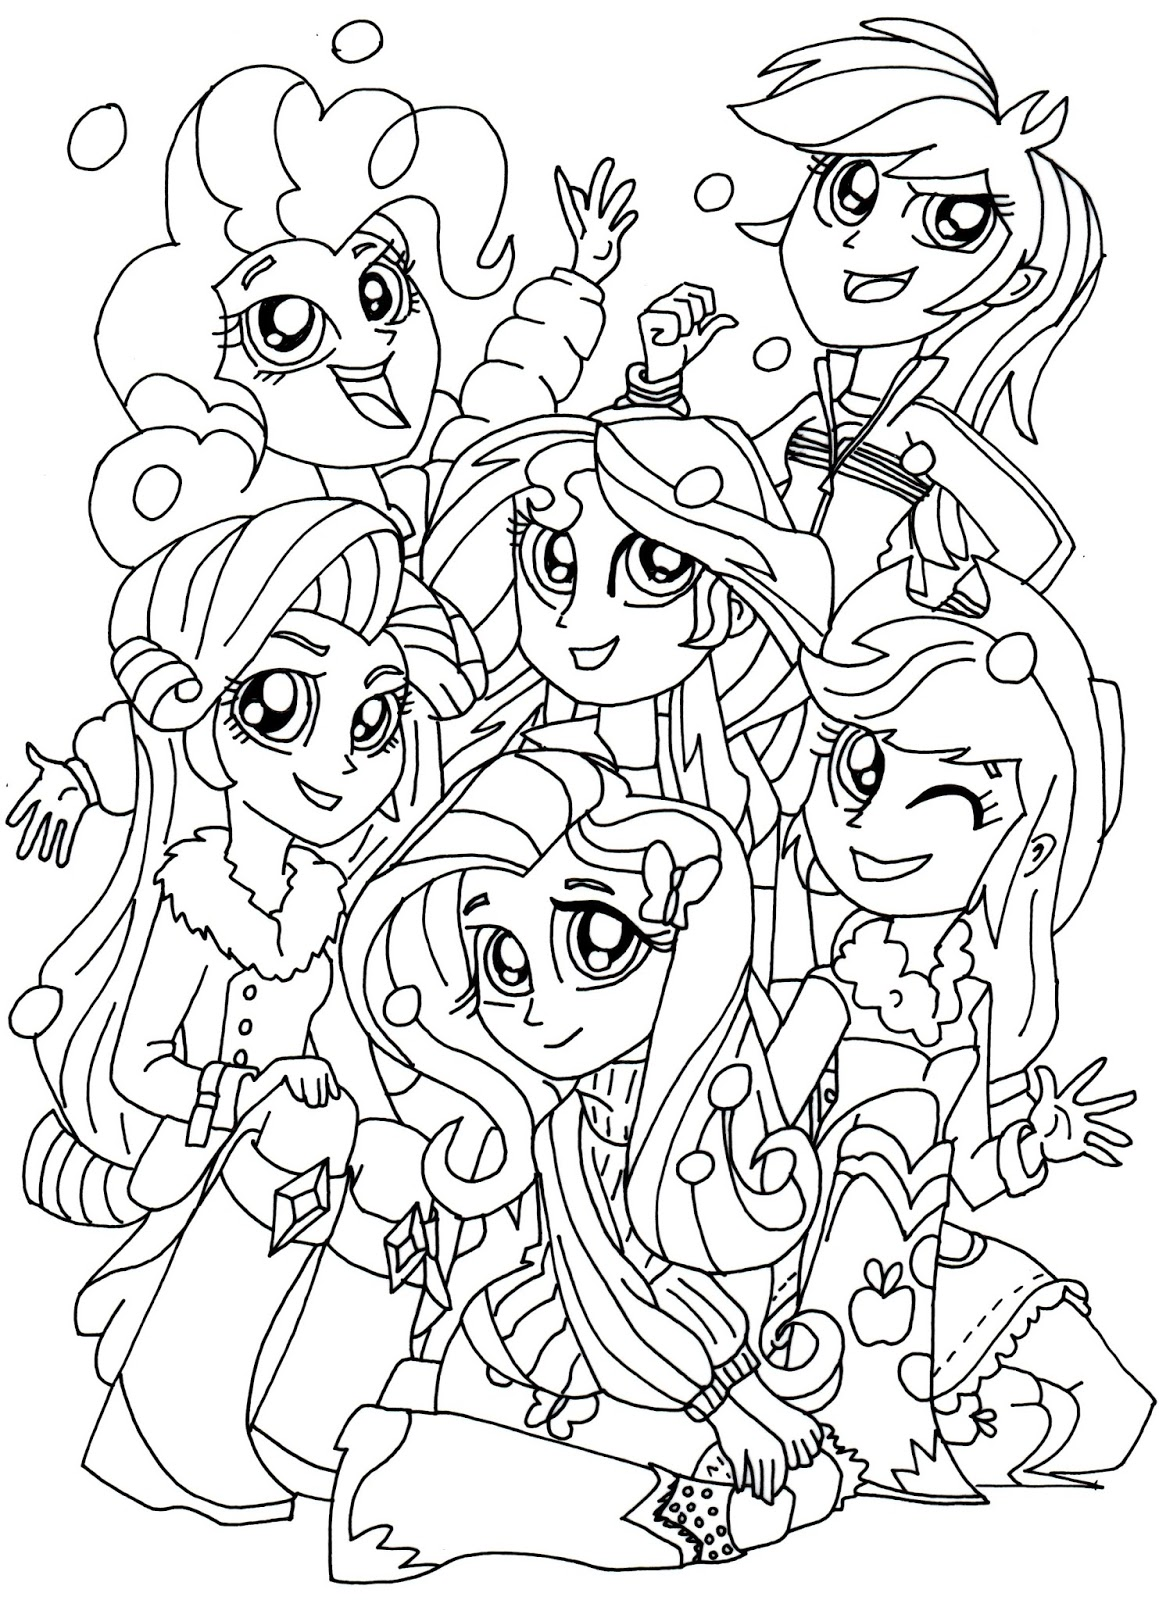 Free Printable My Little Pony Coloring Pages January 2016 My Pony Equestria Coloring Pages